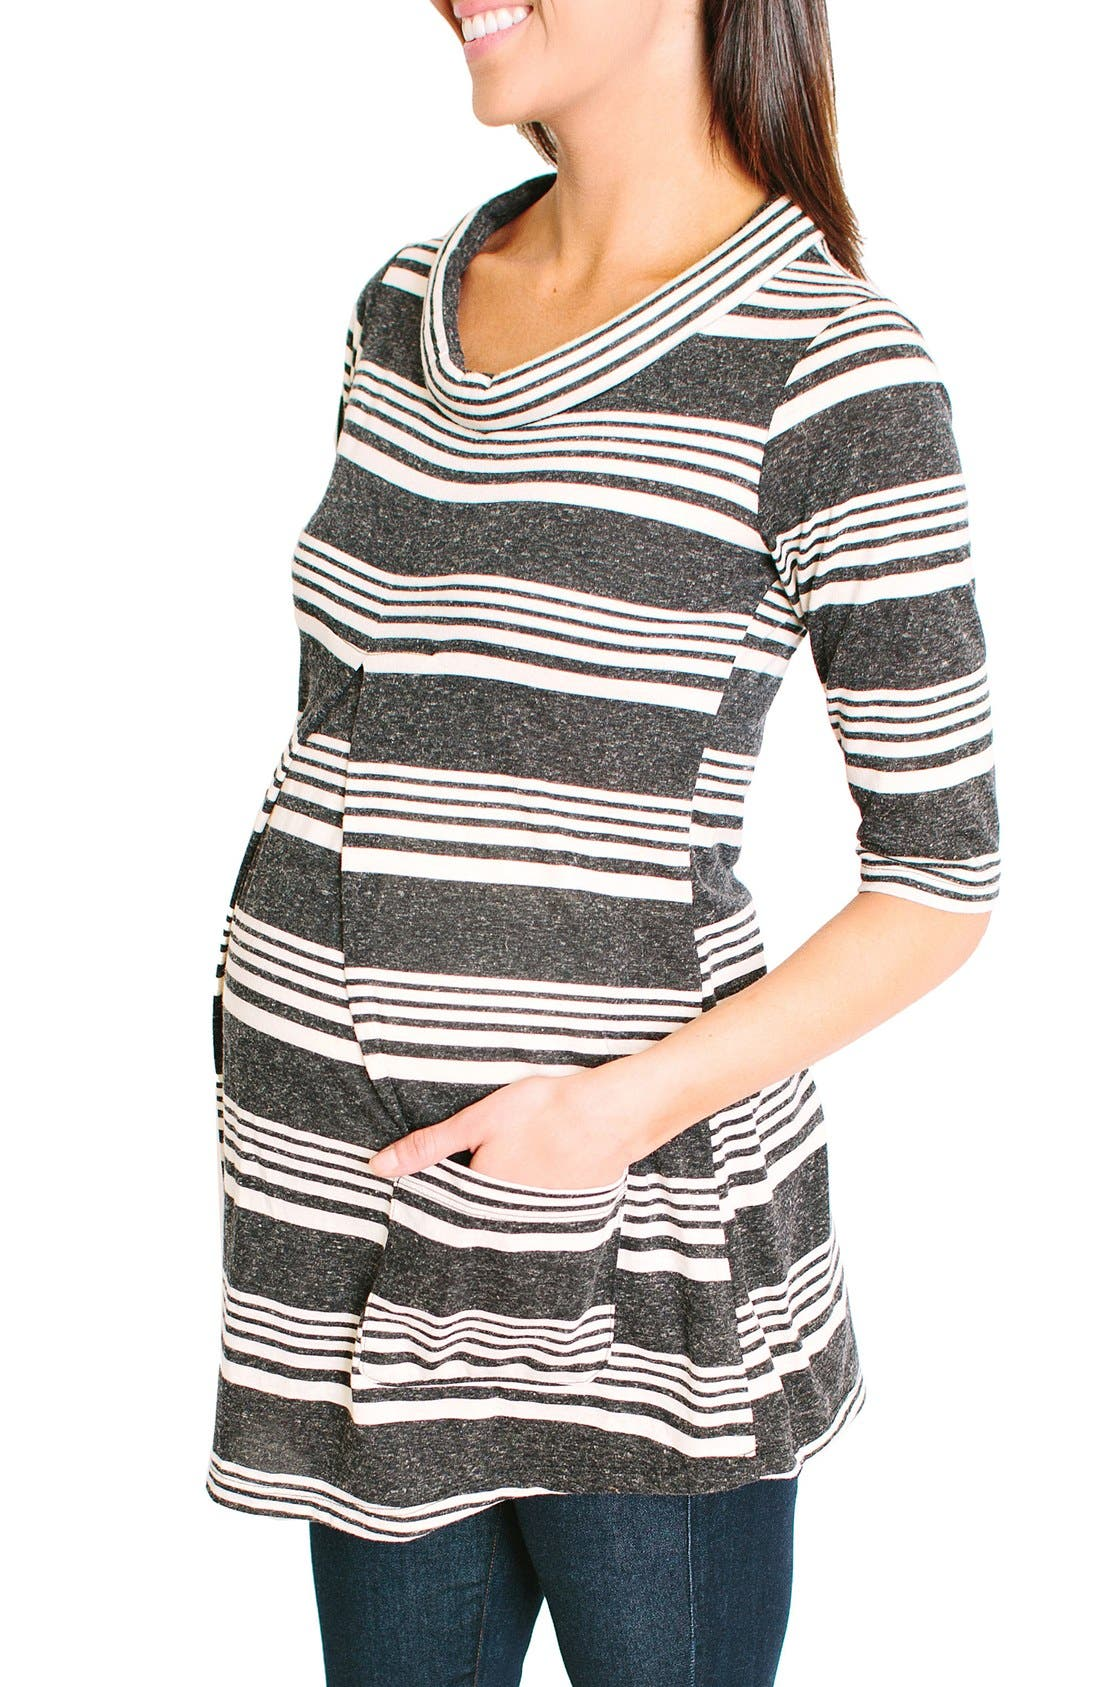 Alternate Image 3  - Nom Maternity Clio Maternity Top